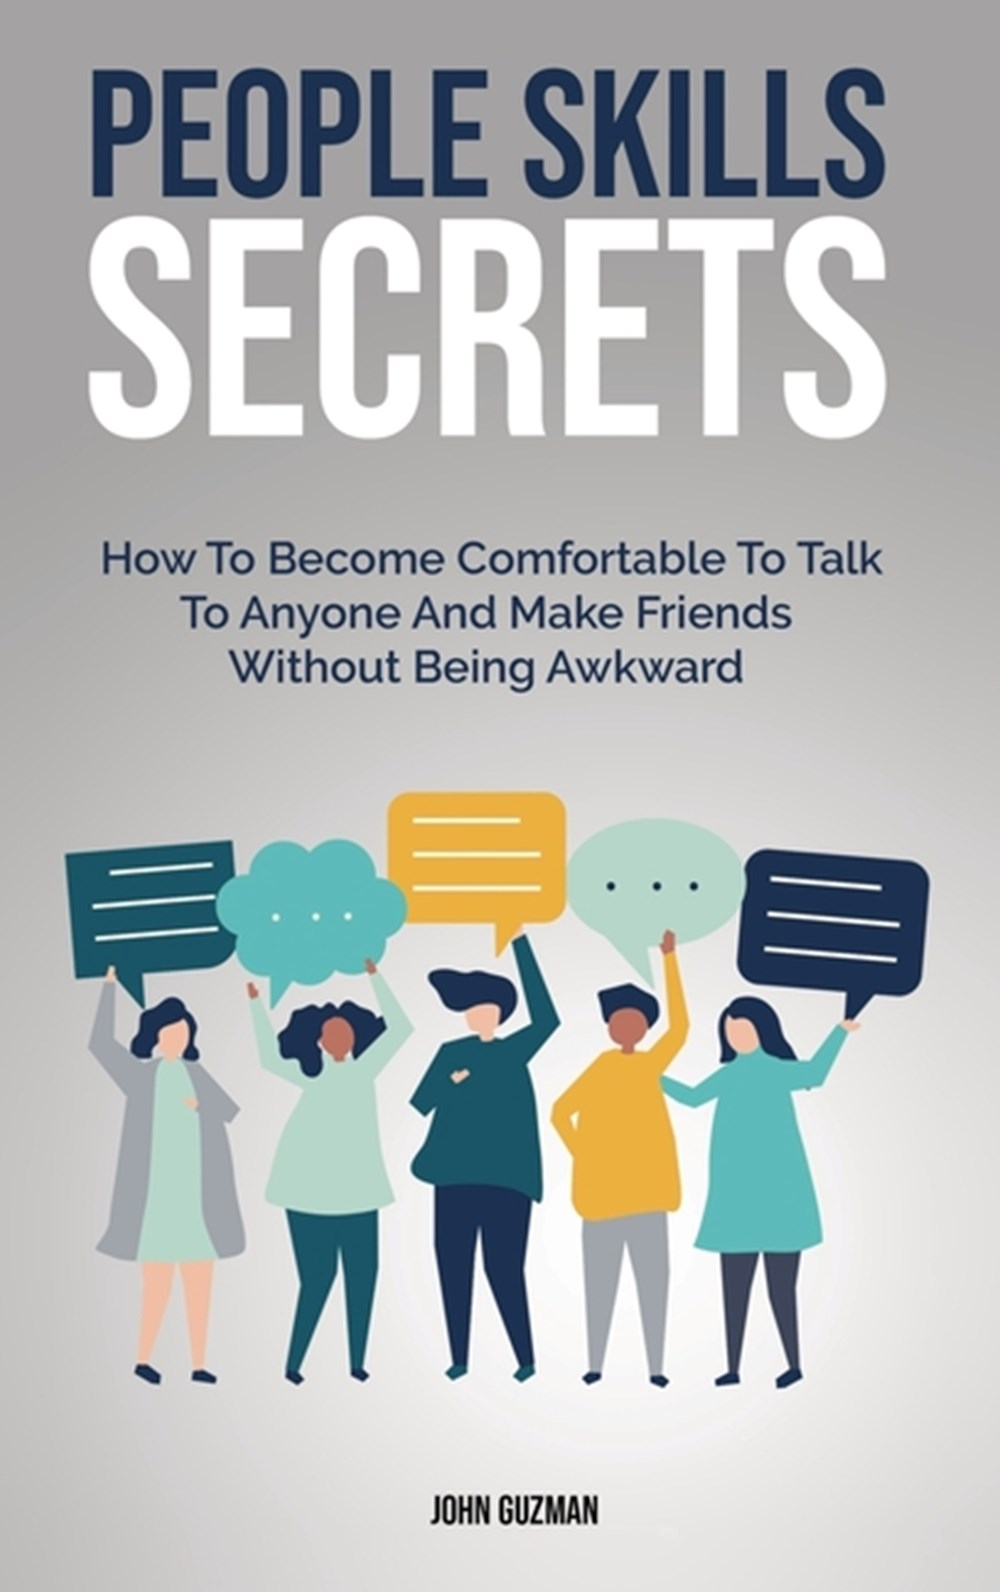 People Skills Secrets How To Become Comfortable To Talk To Anyone And Make Friends Without Being Awk